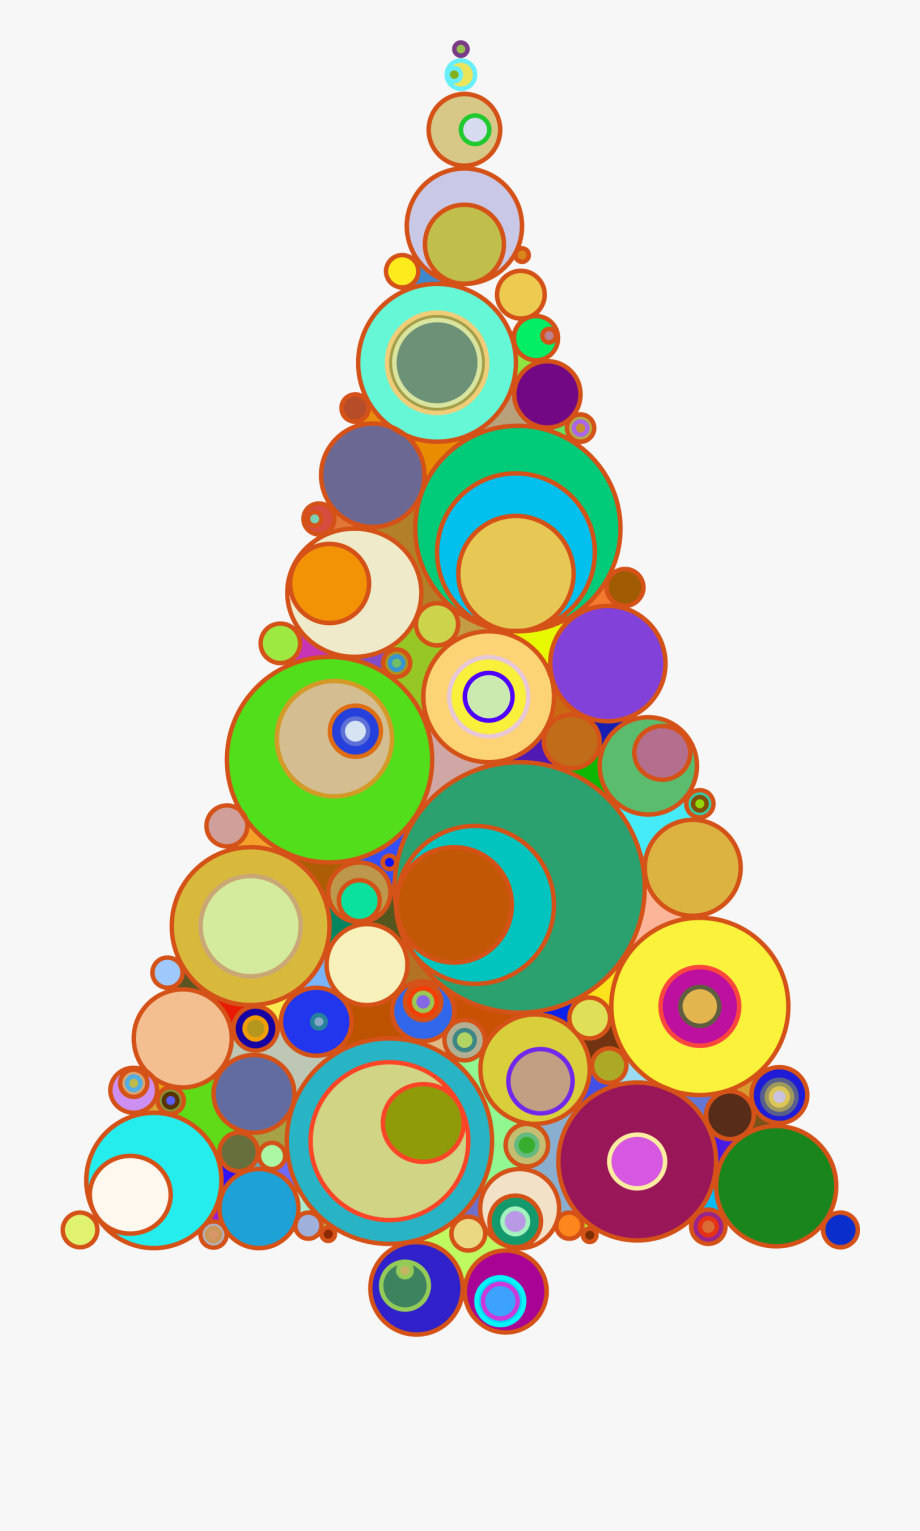 Colorful Christmas Tree Images.Christmas Tree Clipart Colorful Circles To A Christmas